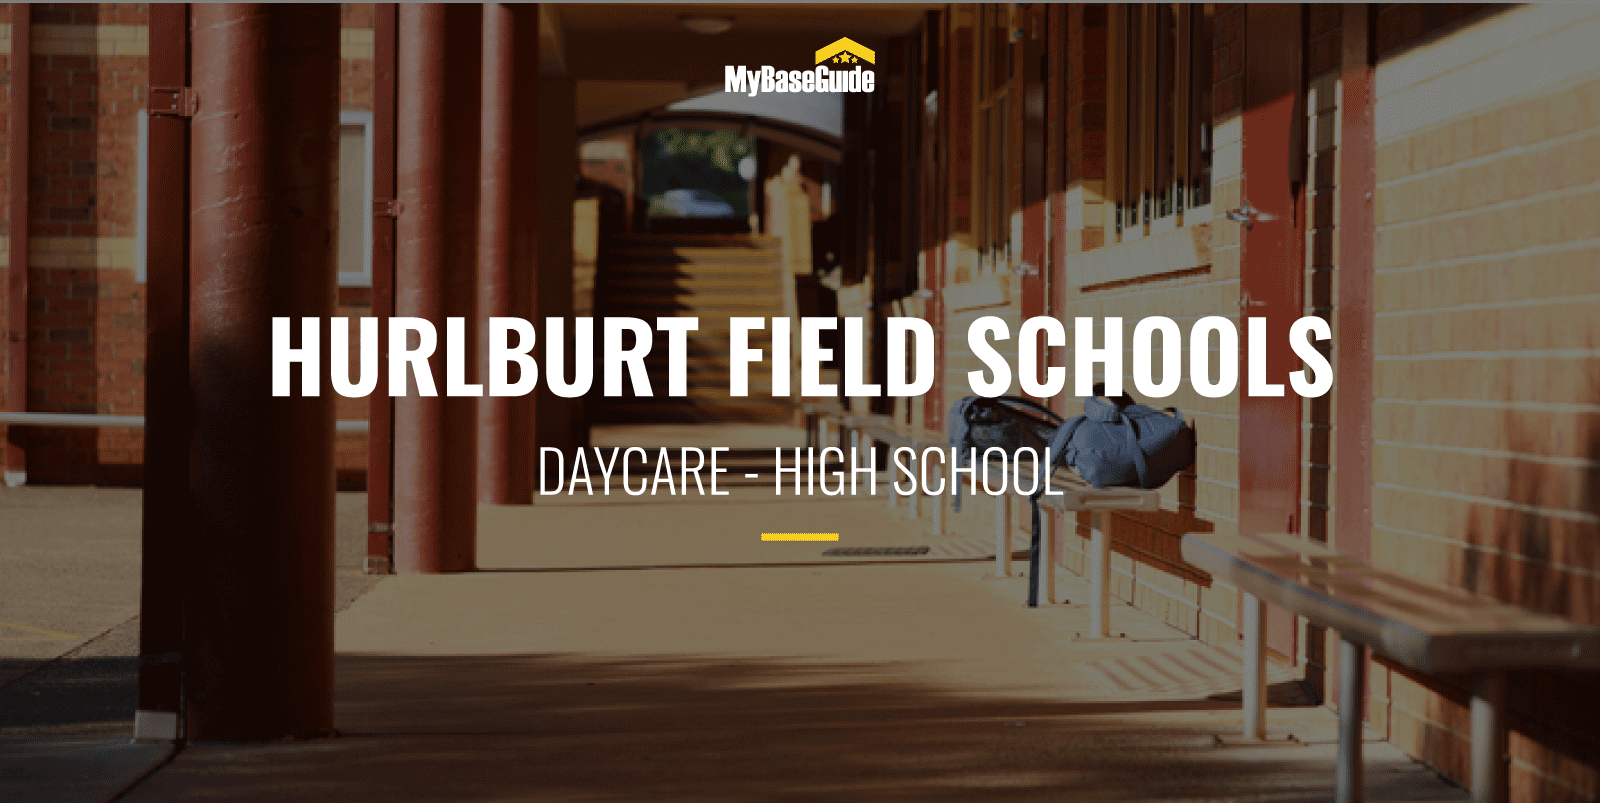 Hurlburt Field Schools: Daycare - High School